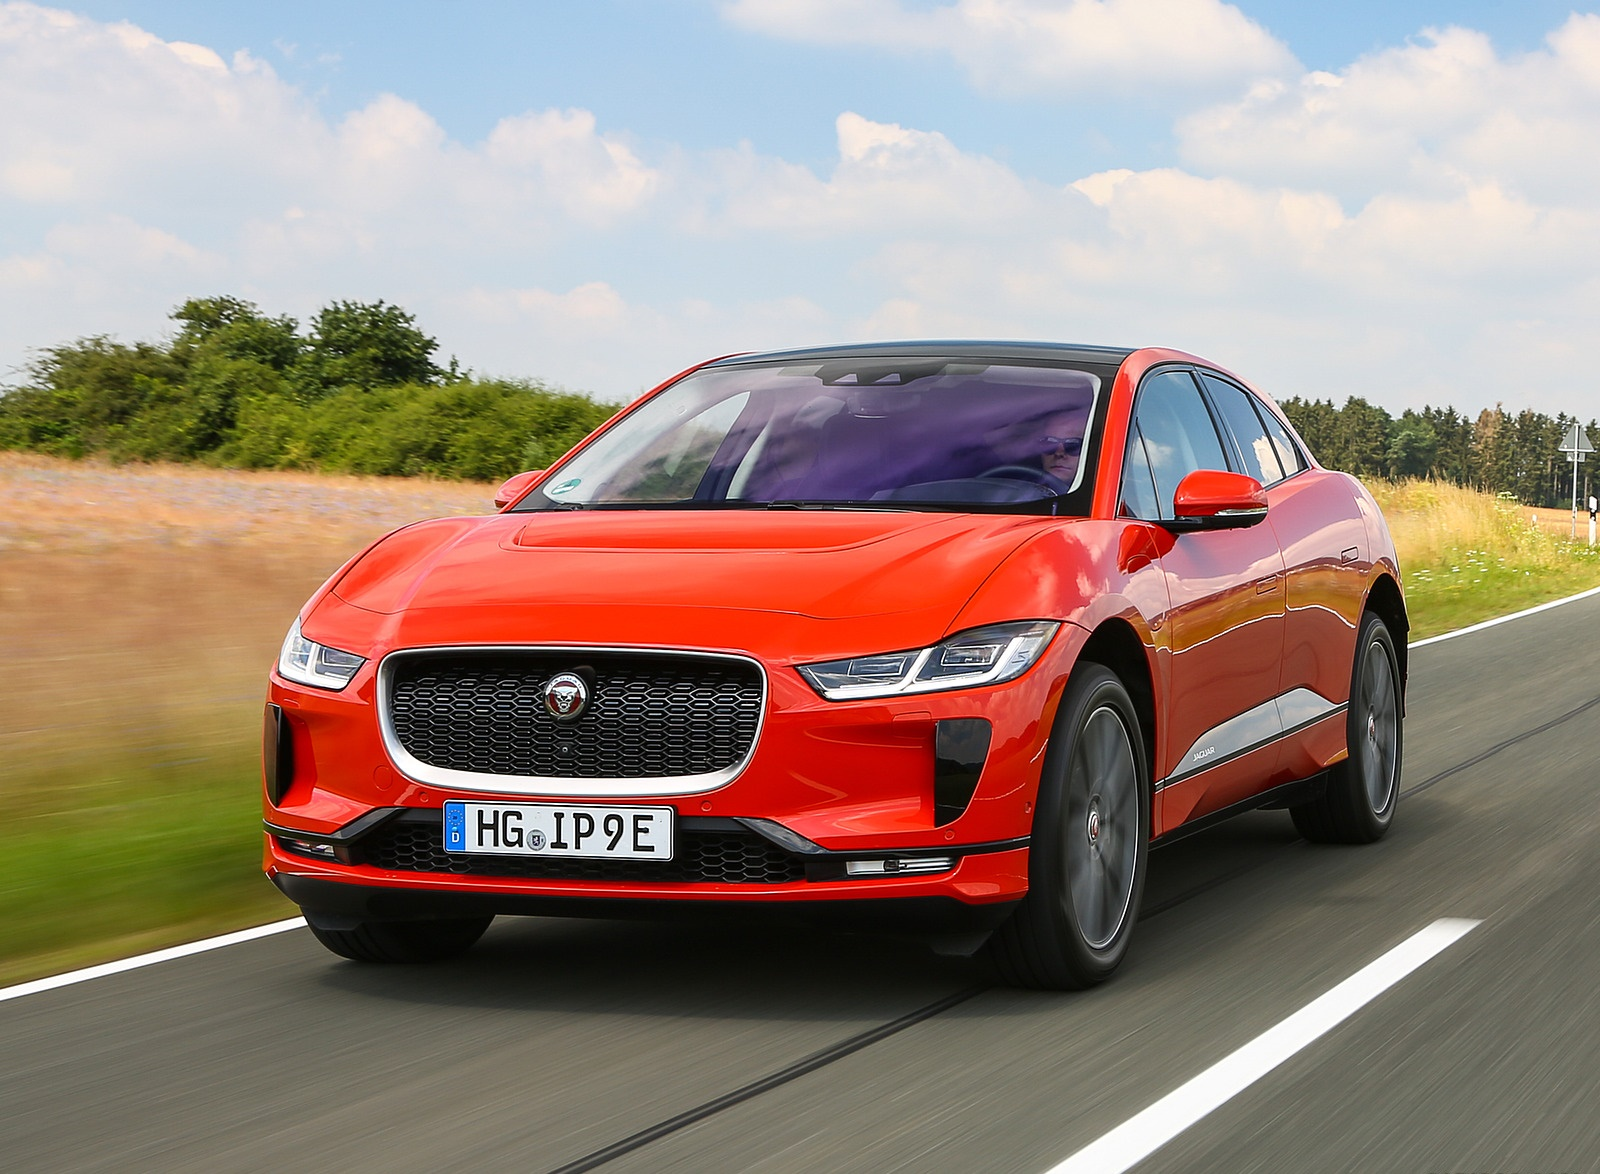 2019 Jaguar I-PACE EV400 AWD HSE First Edition (Color: Photon Red) Front Three-Quarter Wallpapers #10 of 192